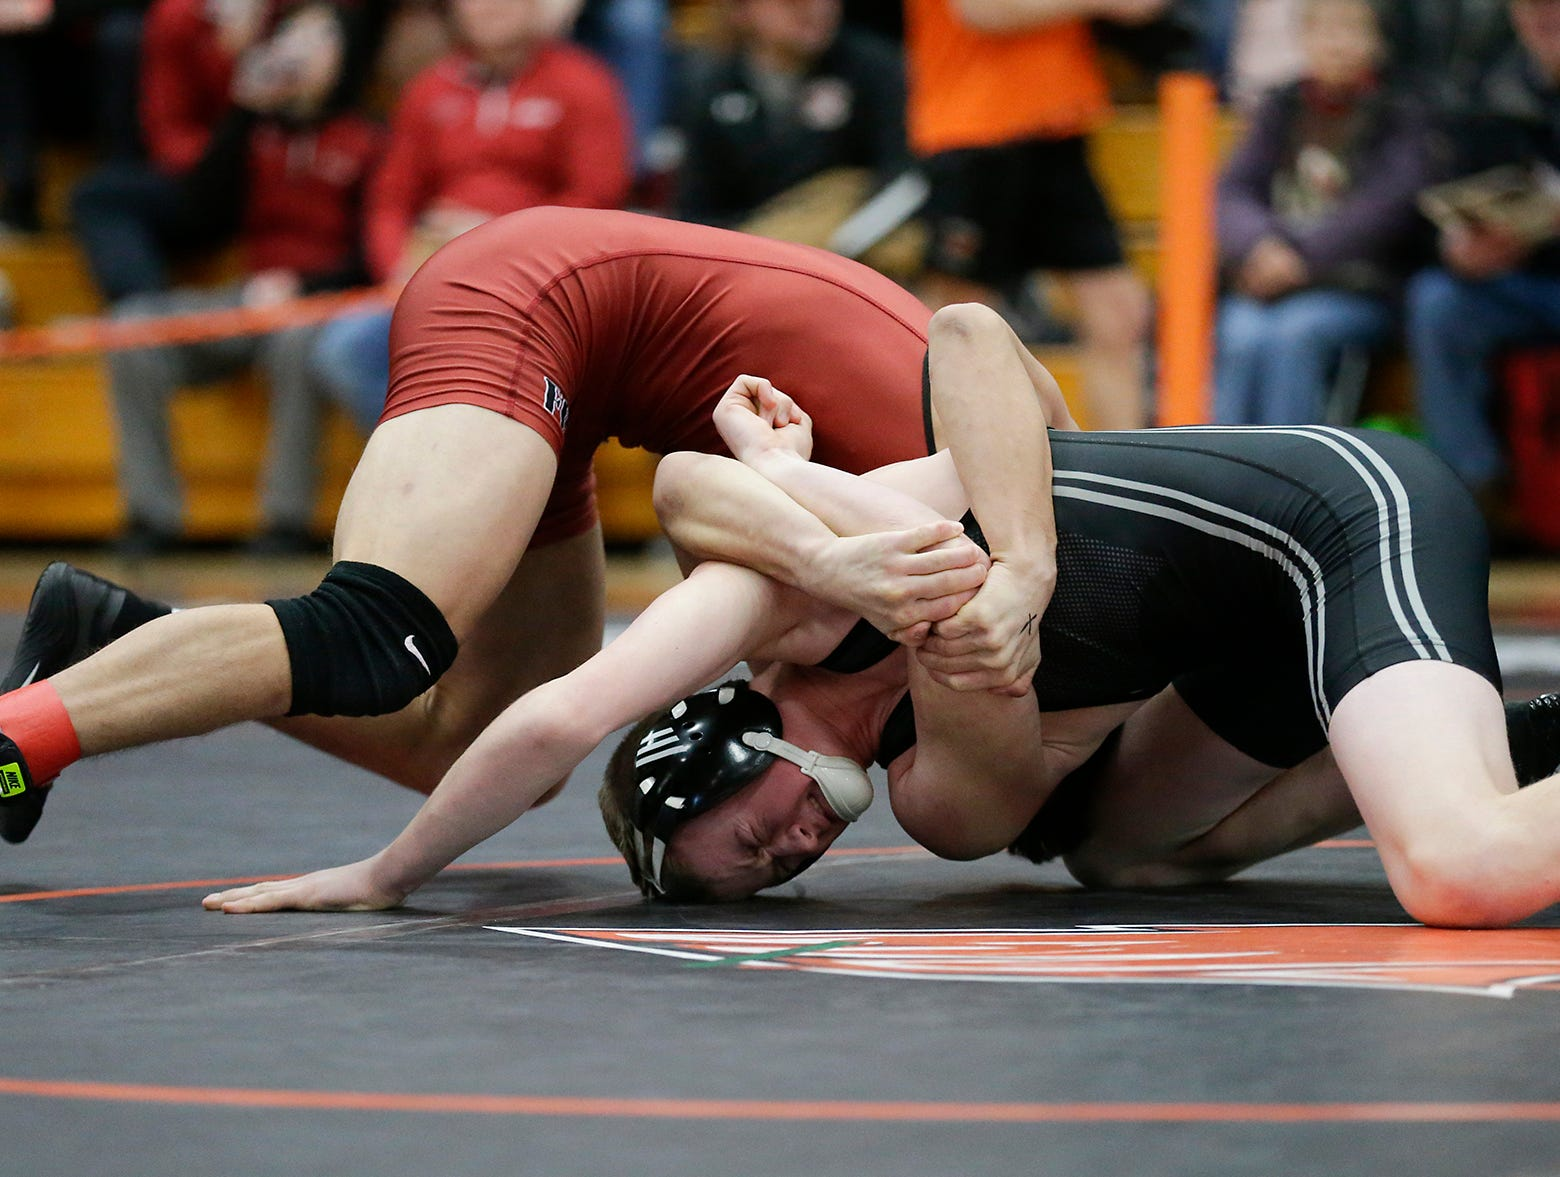 Issac Ortegon of Fond du Lac High School wrestles Jaden Papenfus of Plymouth High School in the 138 pound weight class during the WIAA sectionals Saturday, February 16, 2019 in Hartford, Wis. Ortegon won with a pin. Doug Raflik/USA TODAY NETWORK-Wisconsin